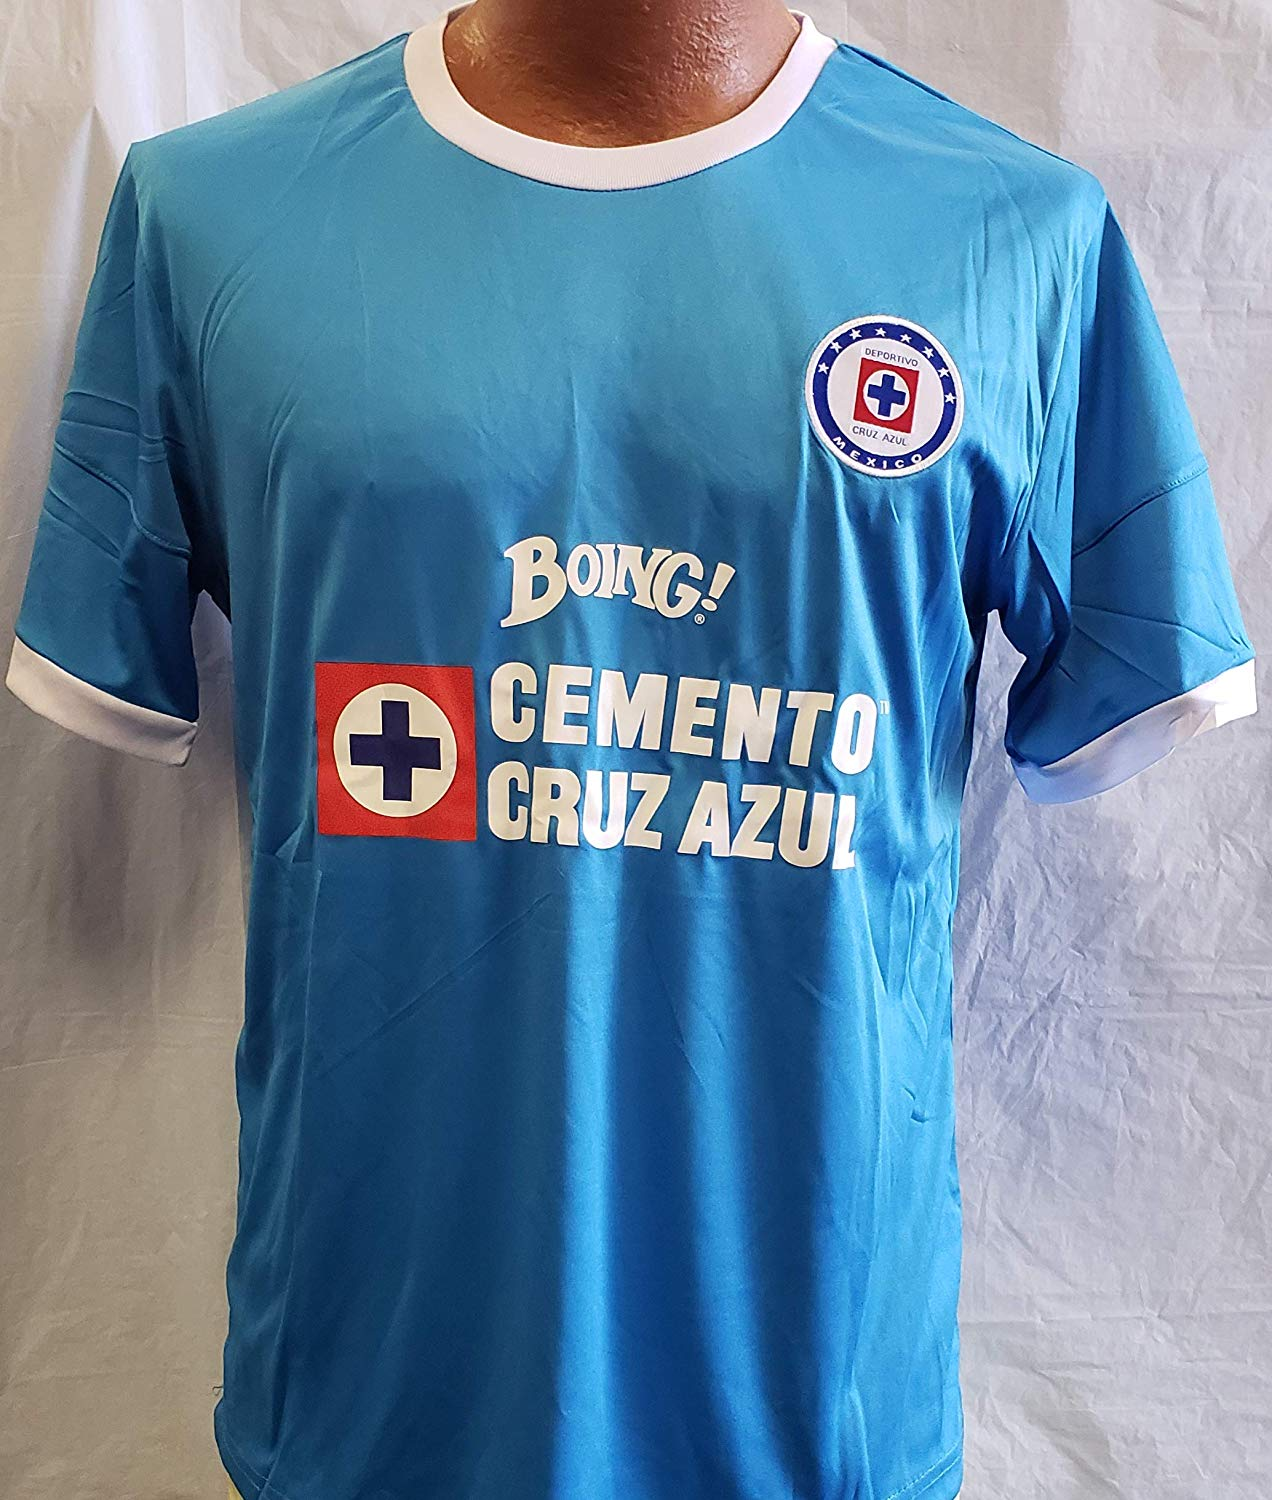 197d805ed39 Get Quotations · Sport New! La Maquina de Cruz Azul Generica Jersey Adult  Medium